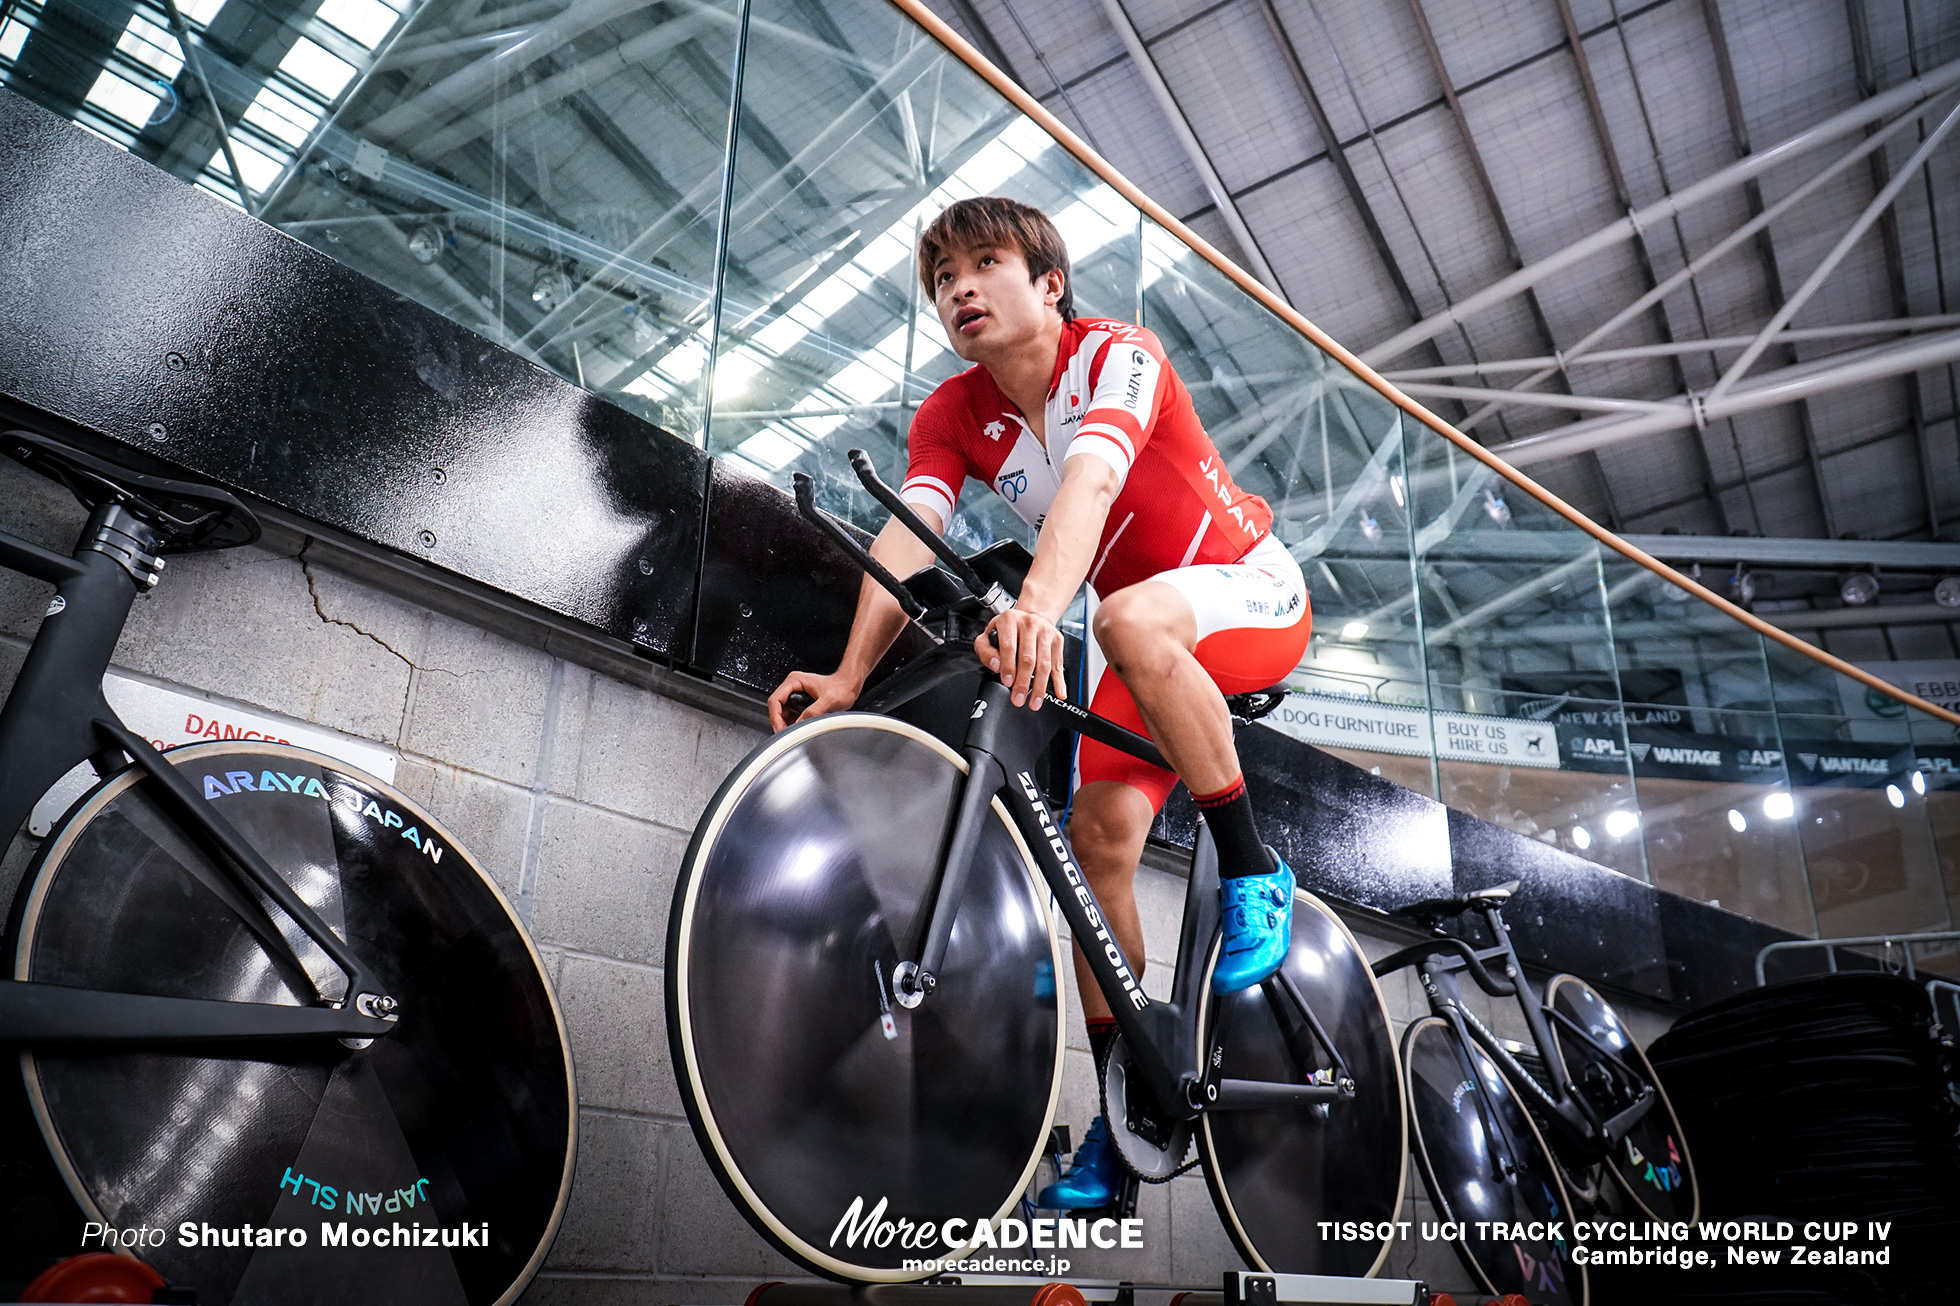 TISSOT UCI TRACK CYCLING WORLD CUP IV, Cambridge, New Zealand, 橋本英也